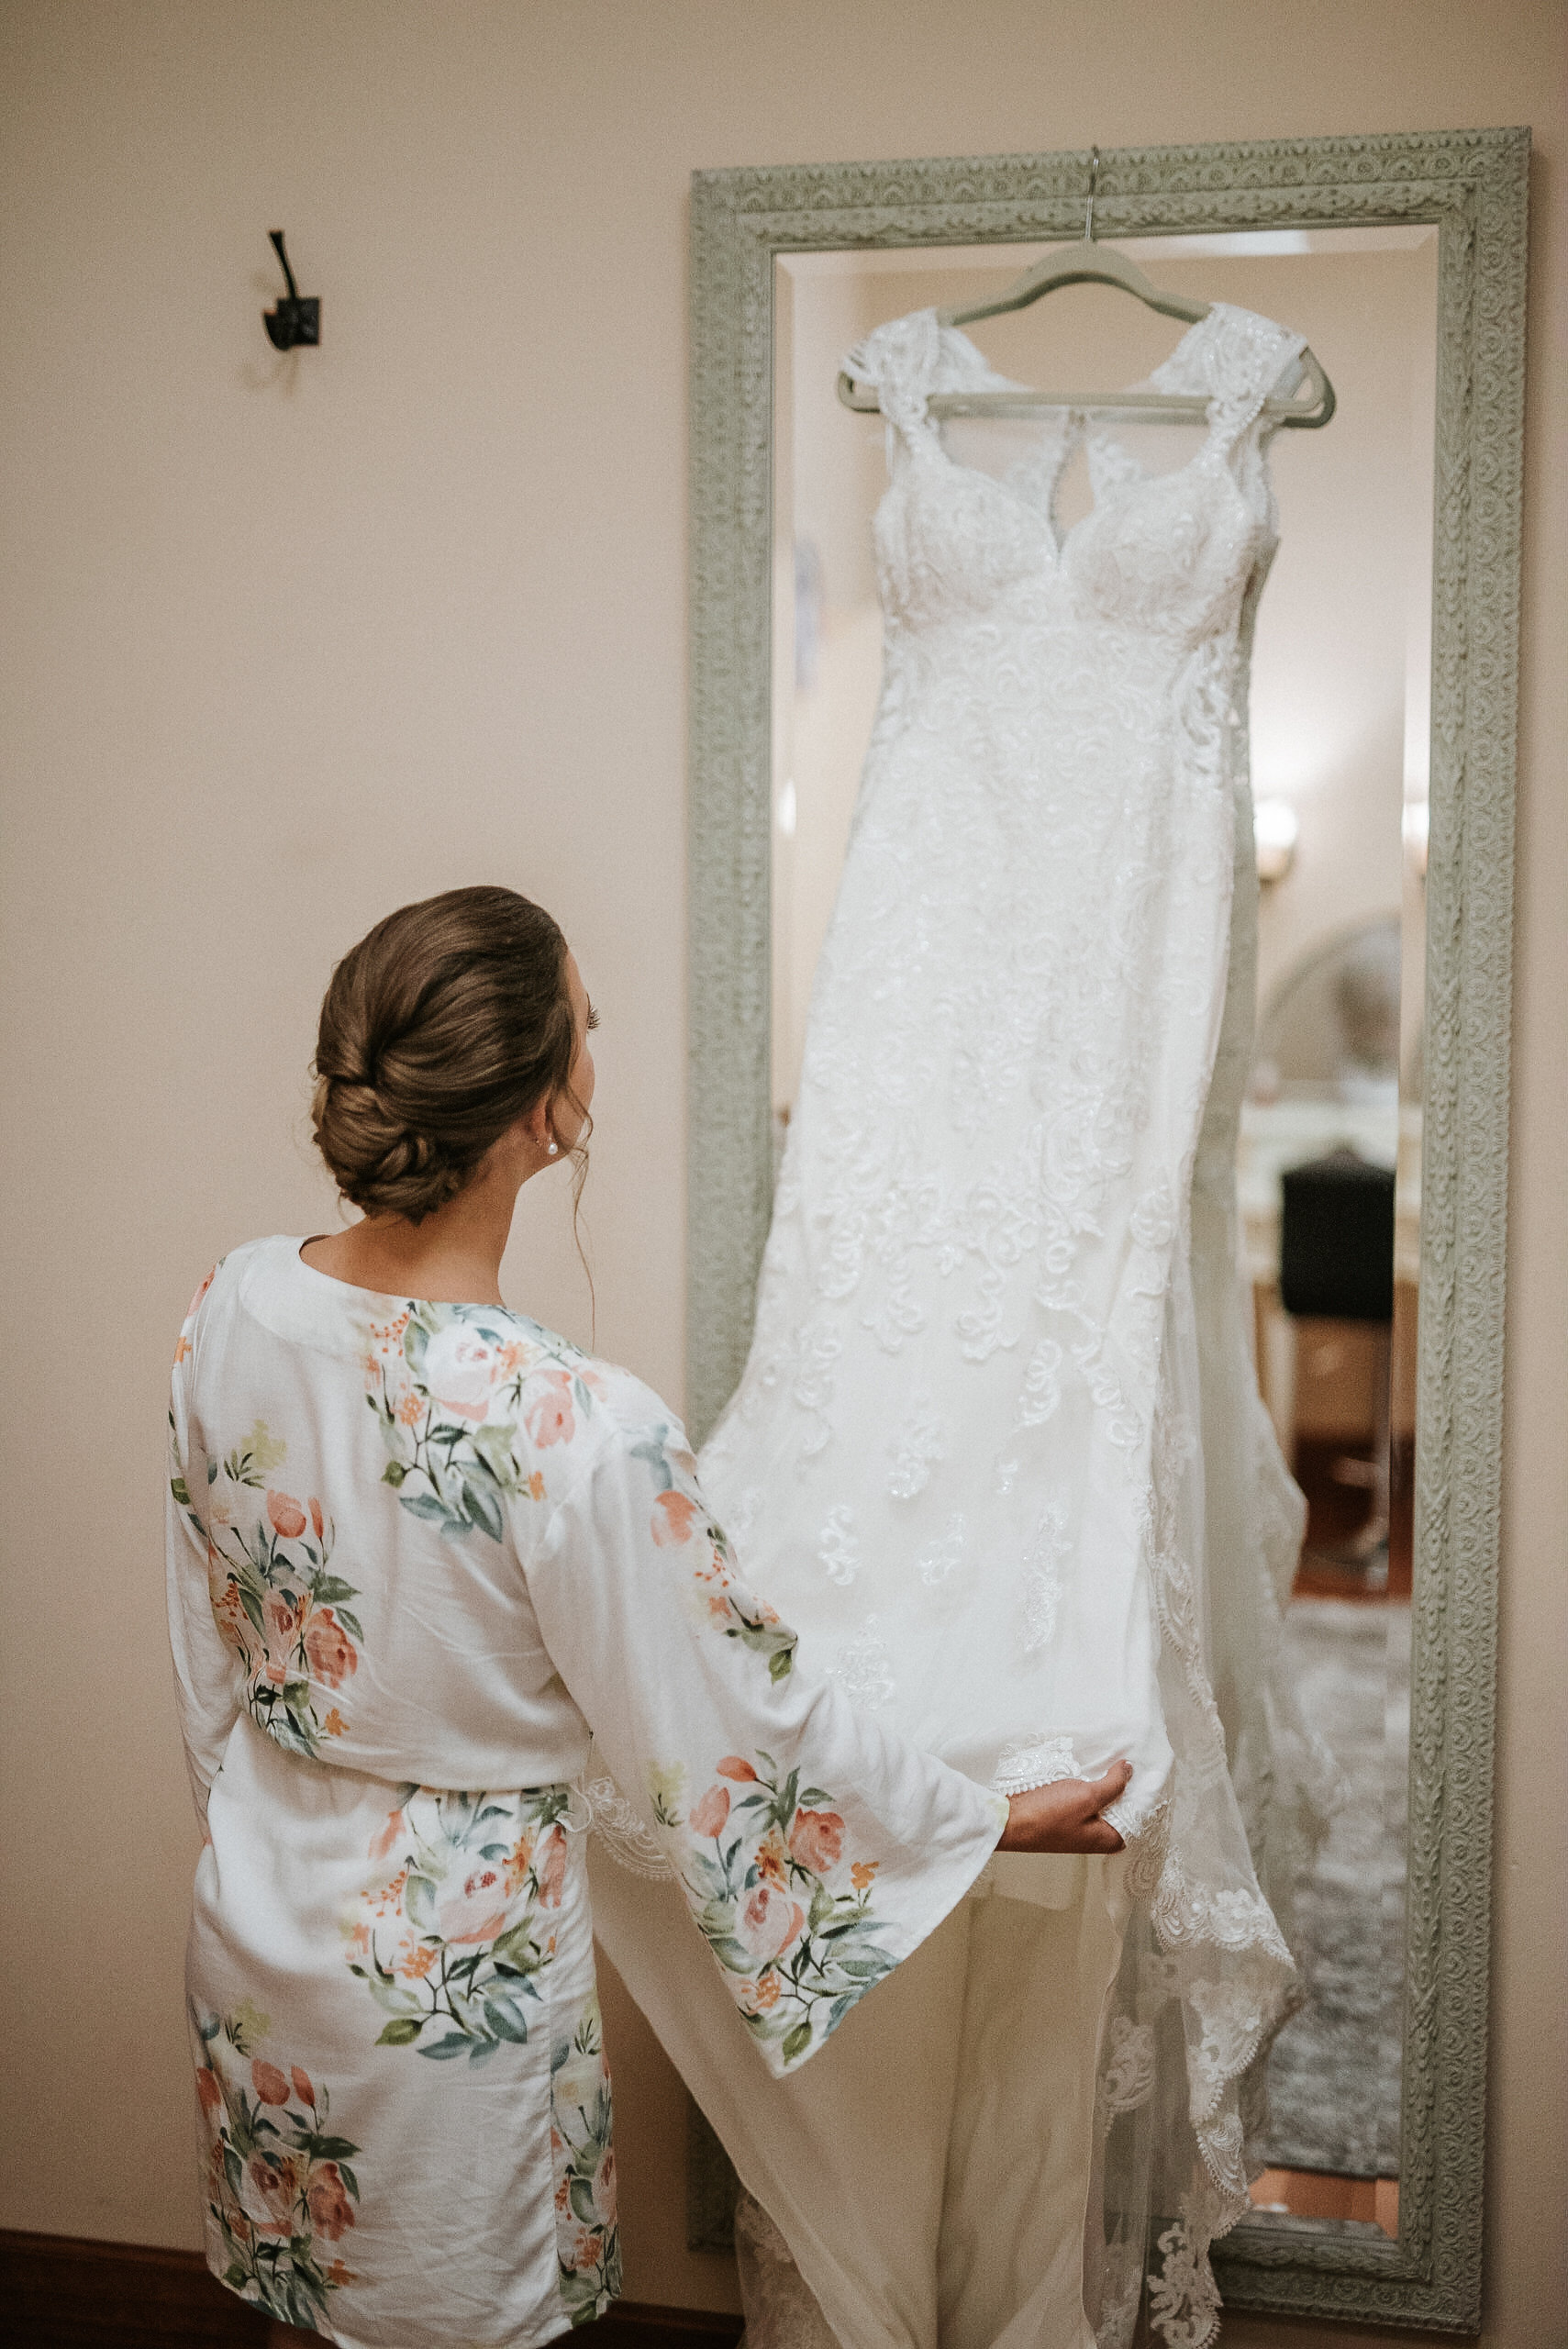 Bride looking at dress on hanger